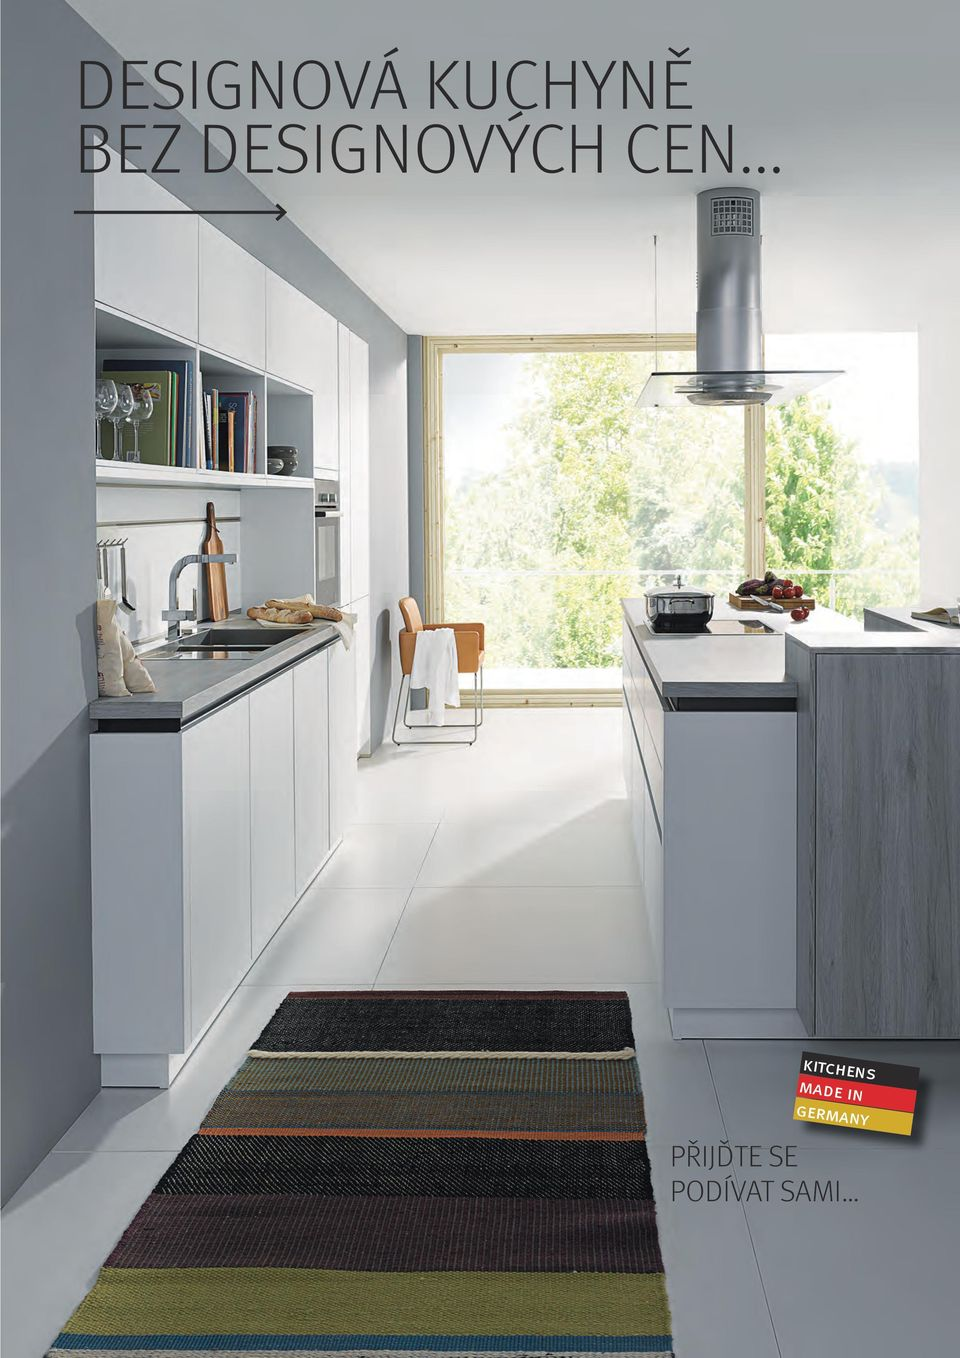 .. kitchens made in